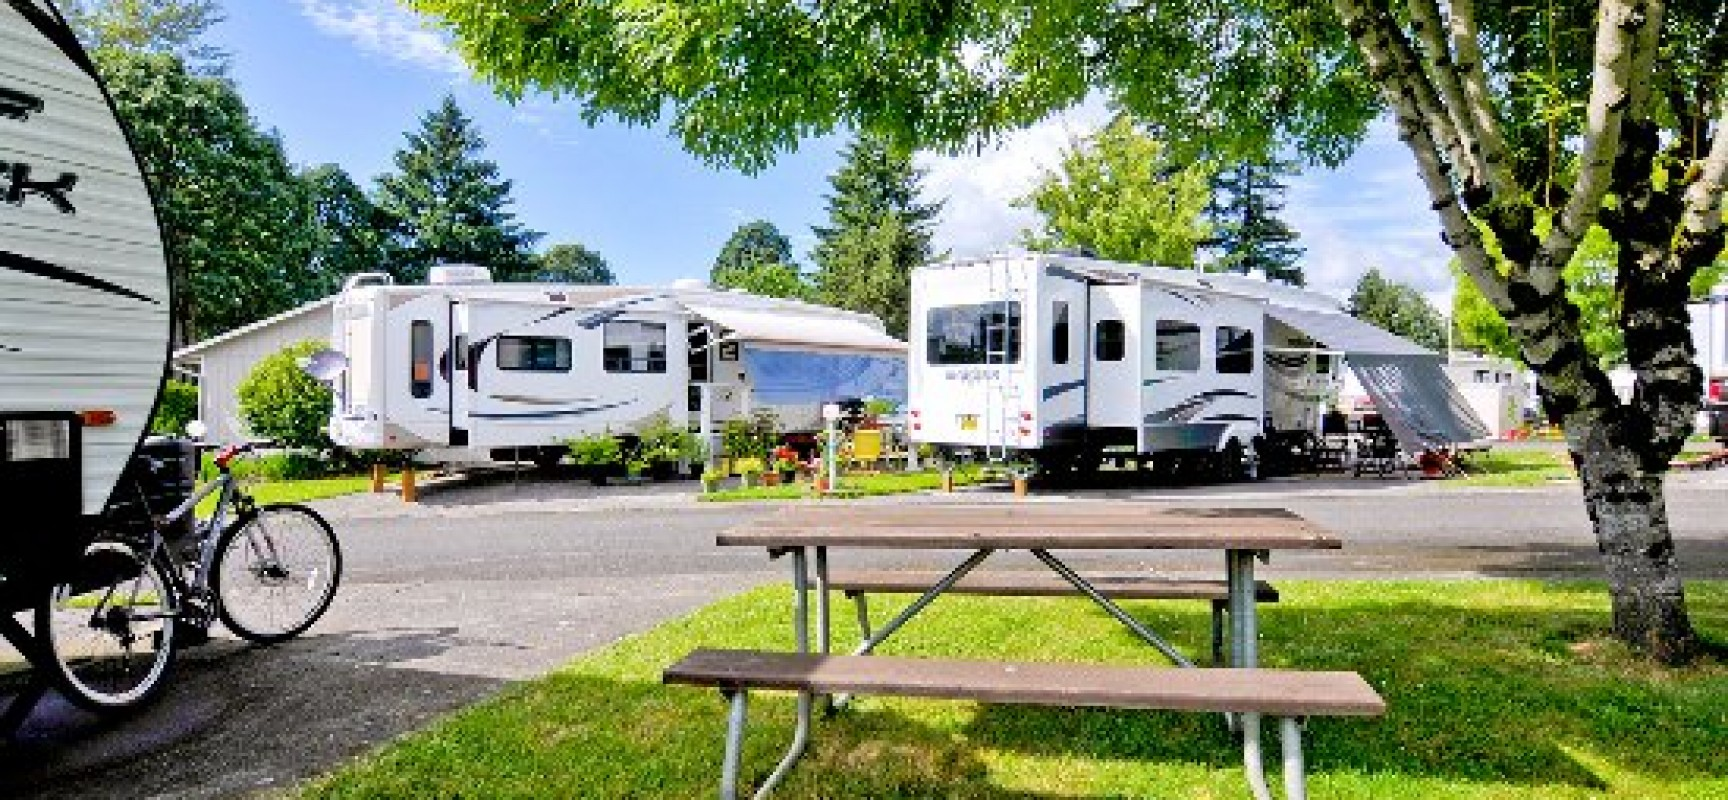 What To Know Before You Take An RV Trip to Portland